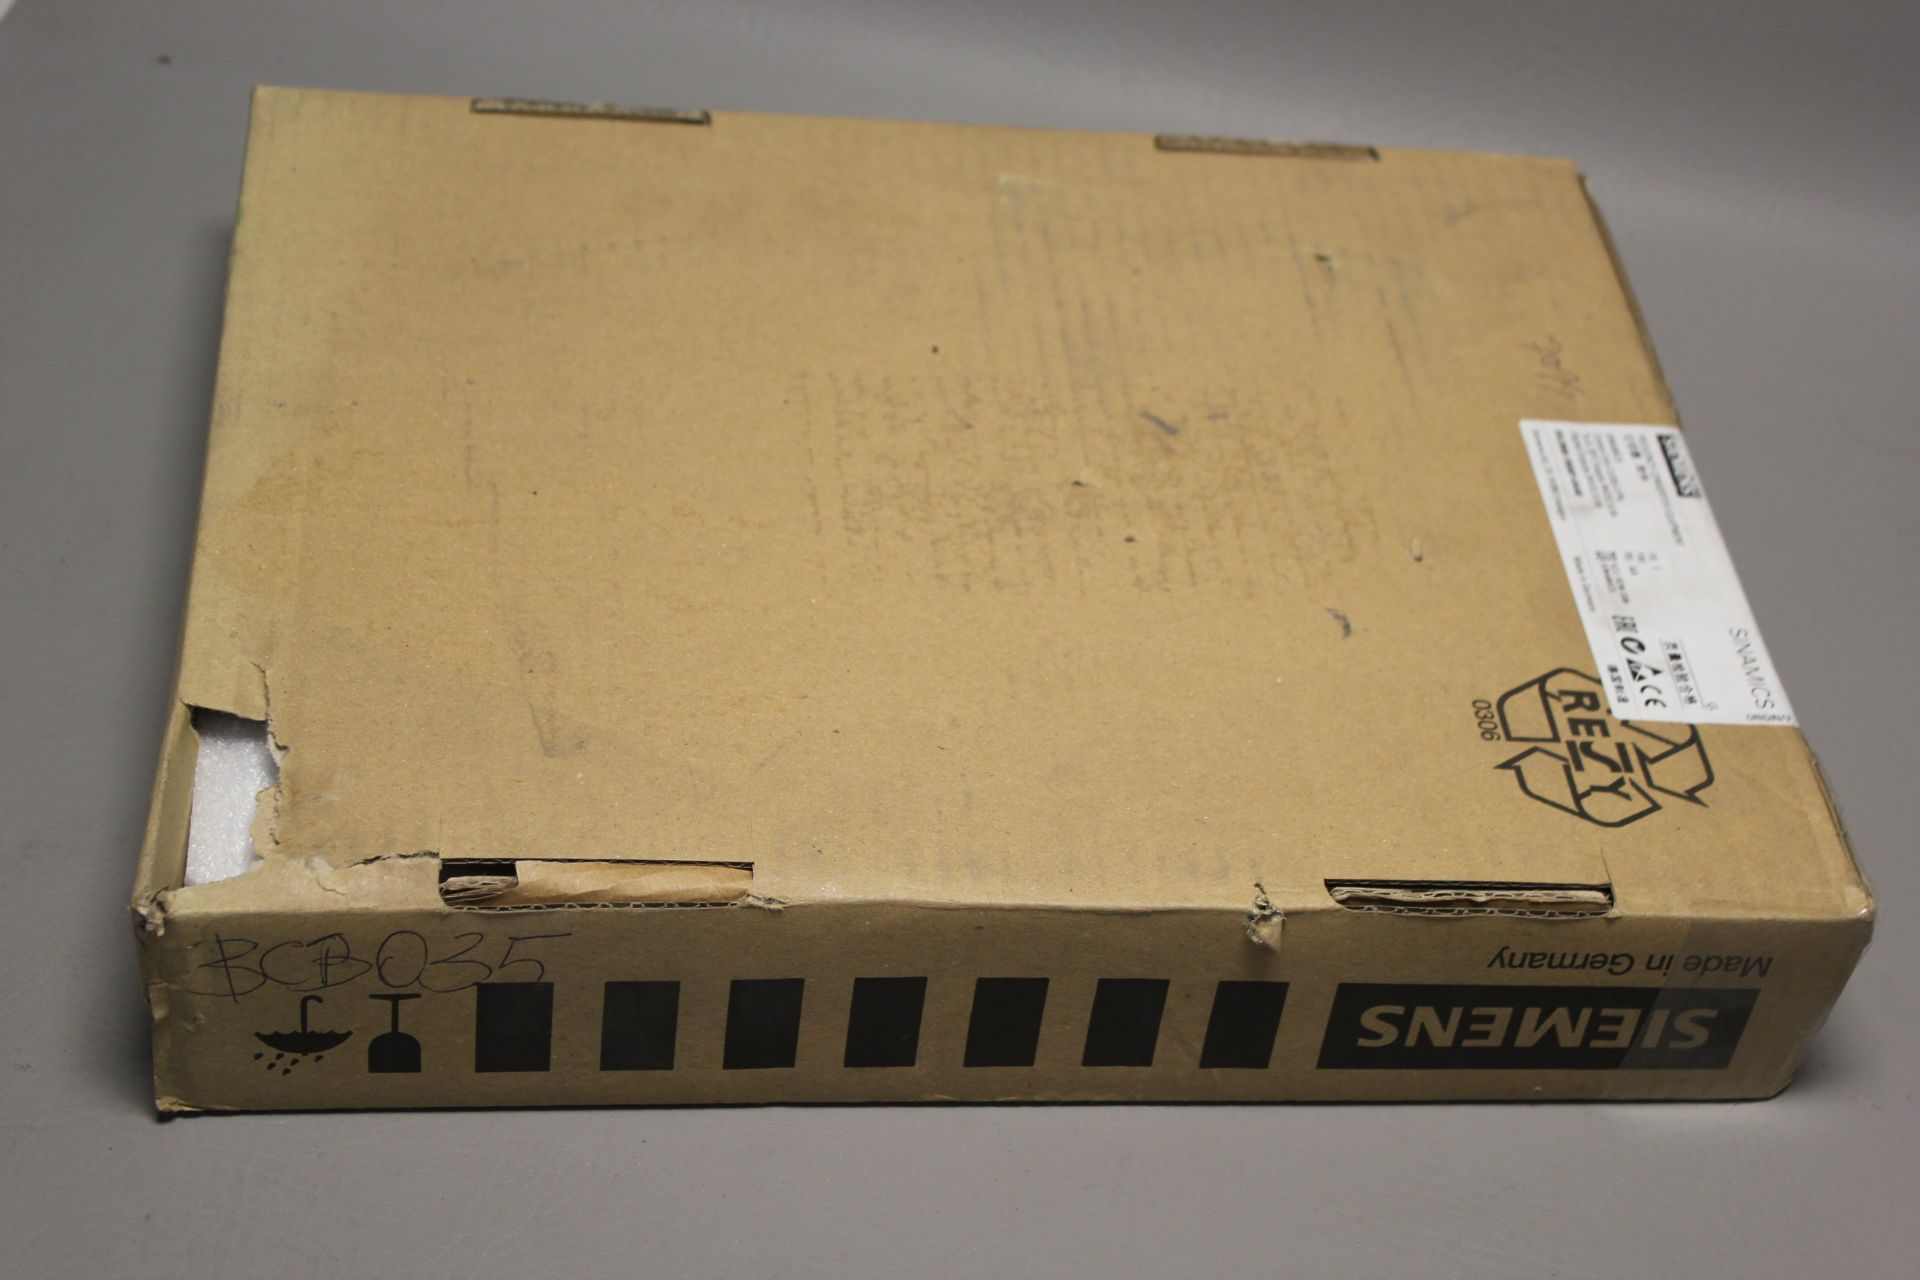 NEW SIEMENS SINAMICS FREQUENCY CONVERTER CONTROL UNIT - Image 5 of 5